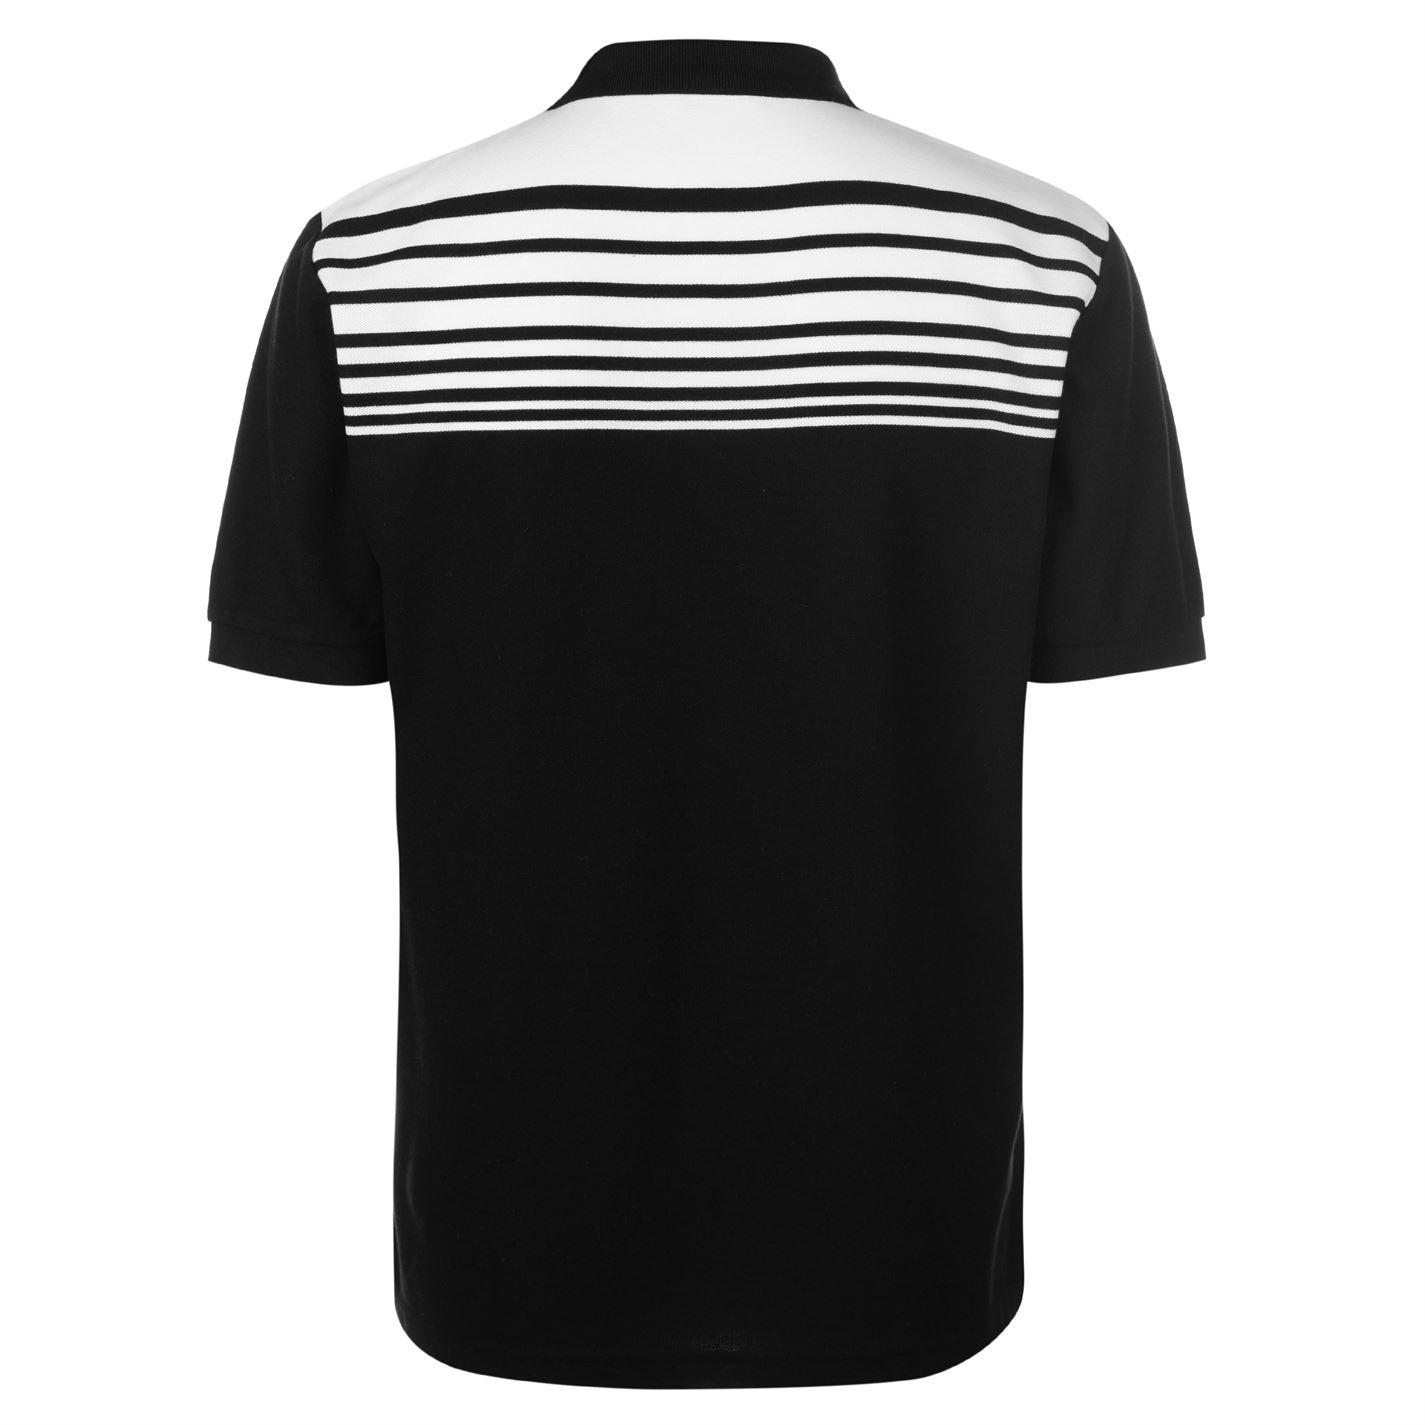 Lonsdale-Mens-Stripe-Polo-Shirt-Classic-Fit-Tee-Top-Short-Sleeve-Button-Placket thumbnail 23